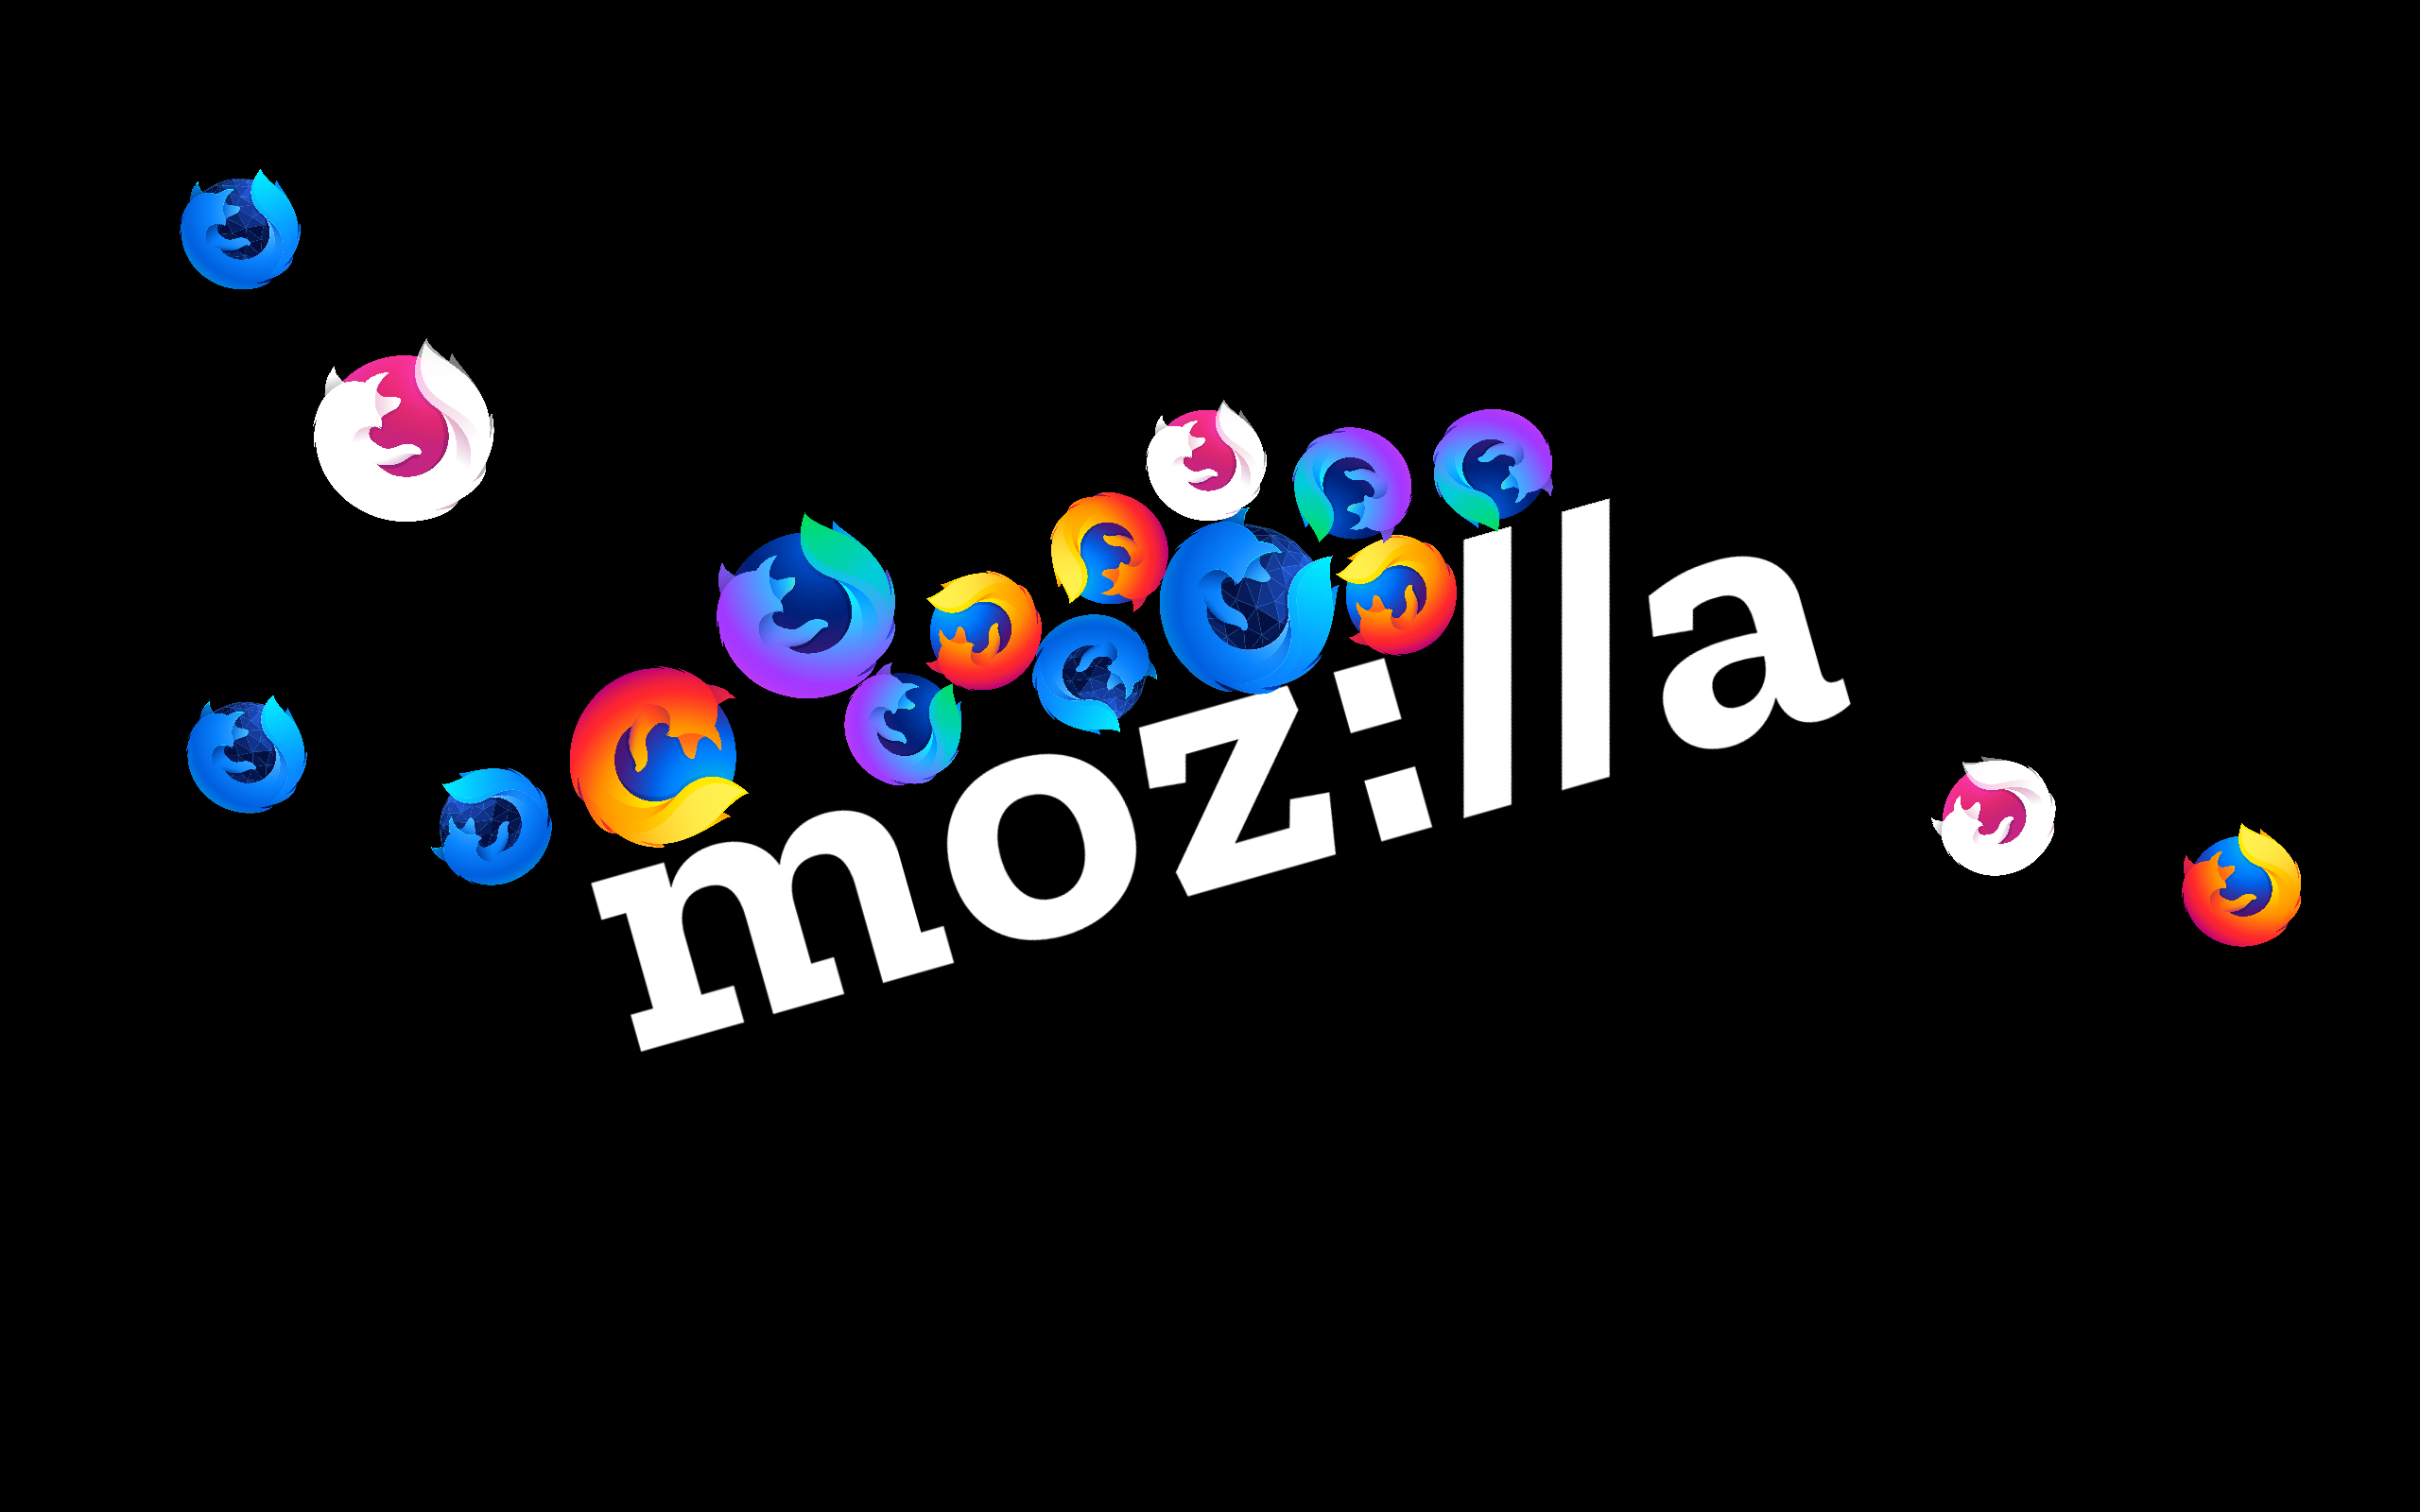 Mozilla Screen Saver